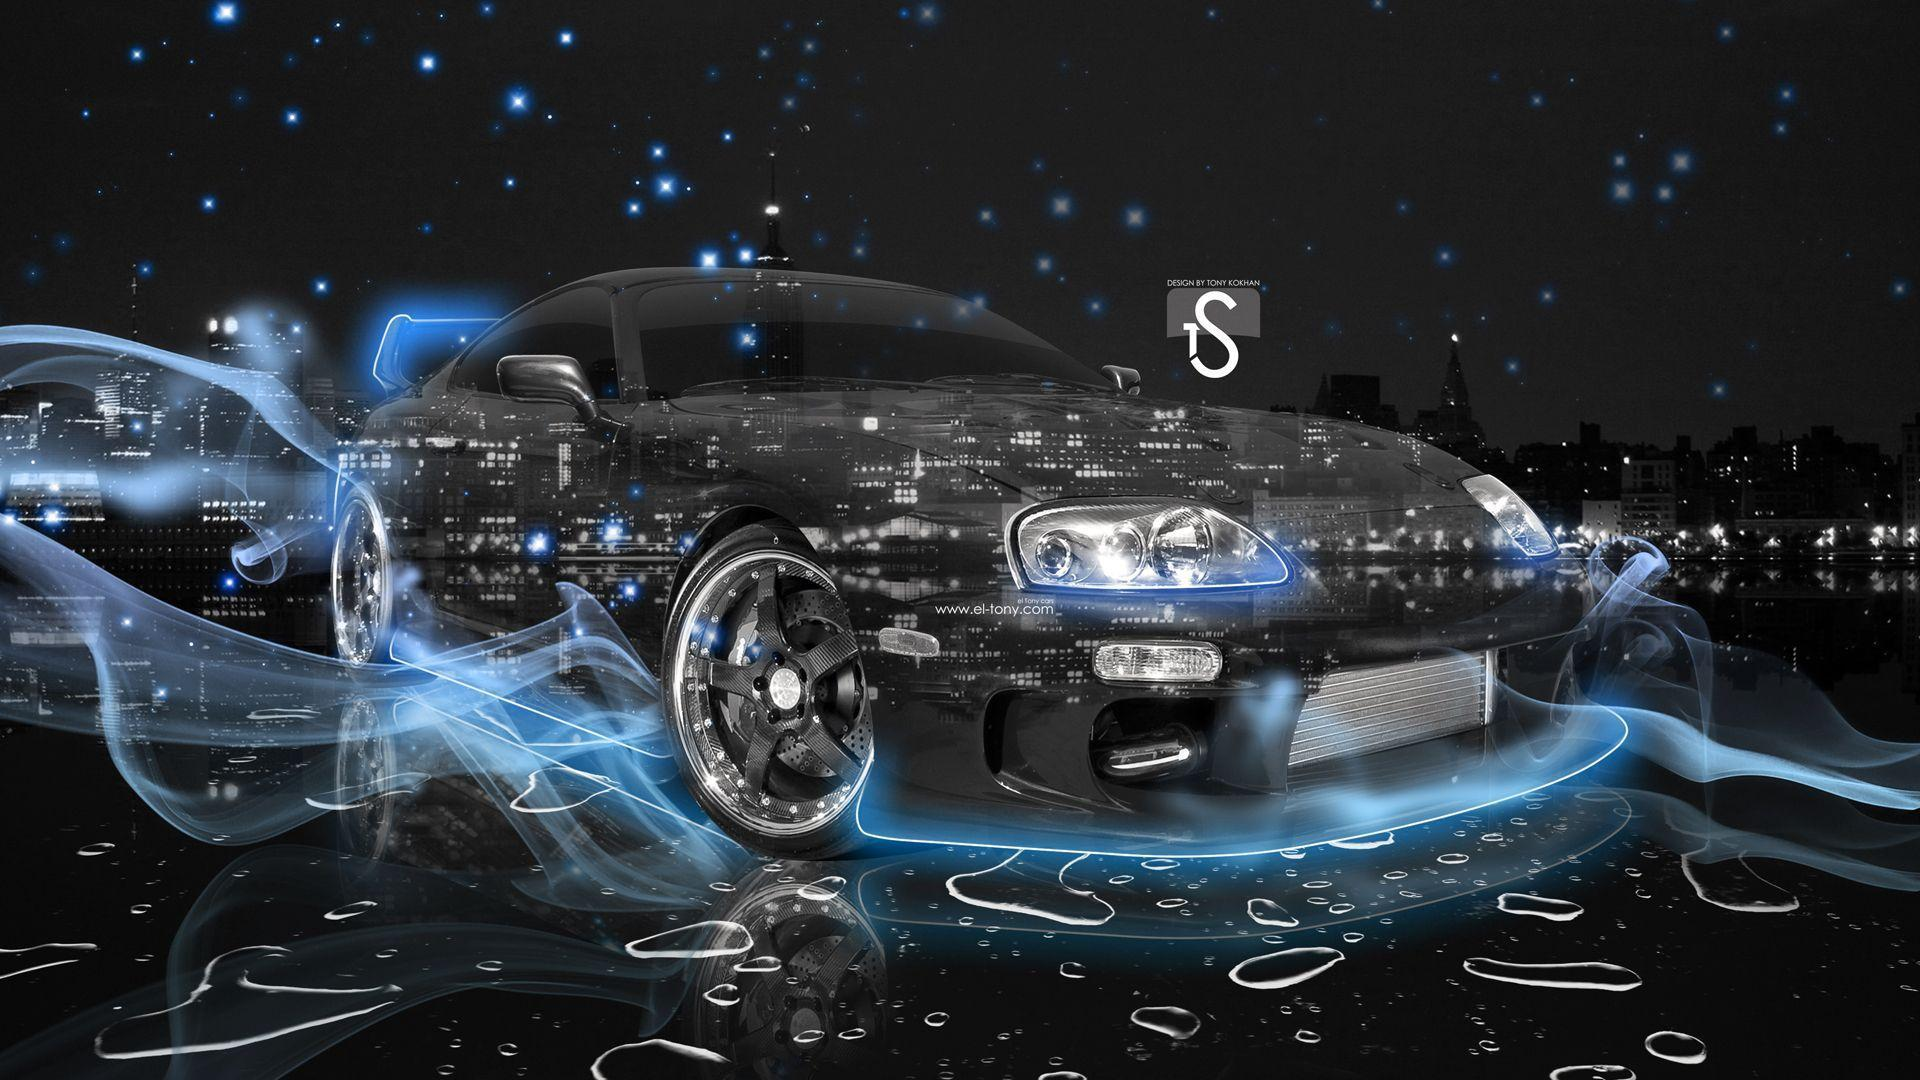 Car HD Wallpapers for Desktop, iPhone, iPad, and Android